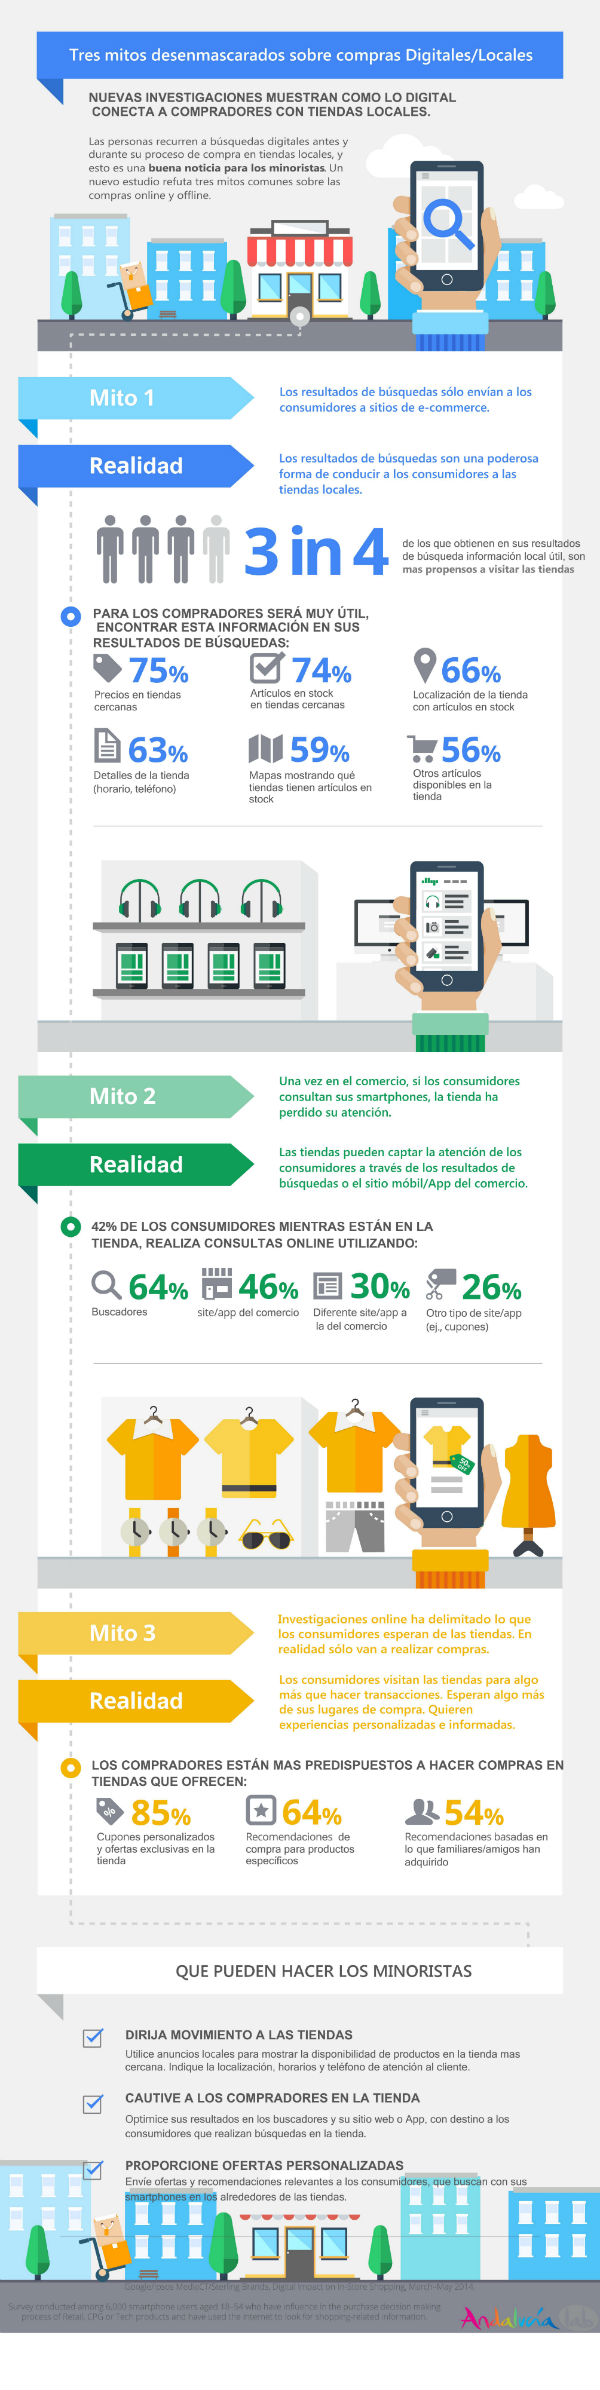 como-lo-digital-conecta-comercio-local-infografia